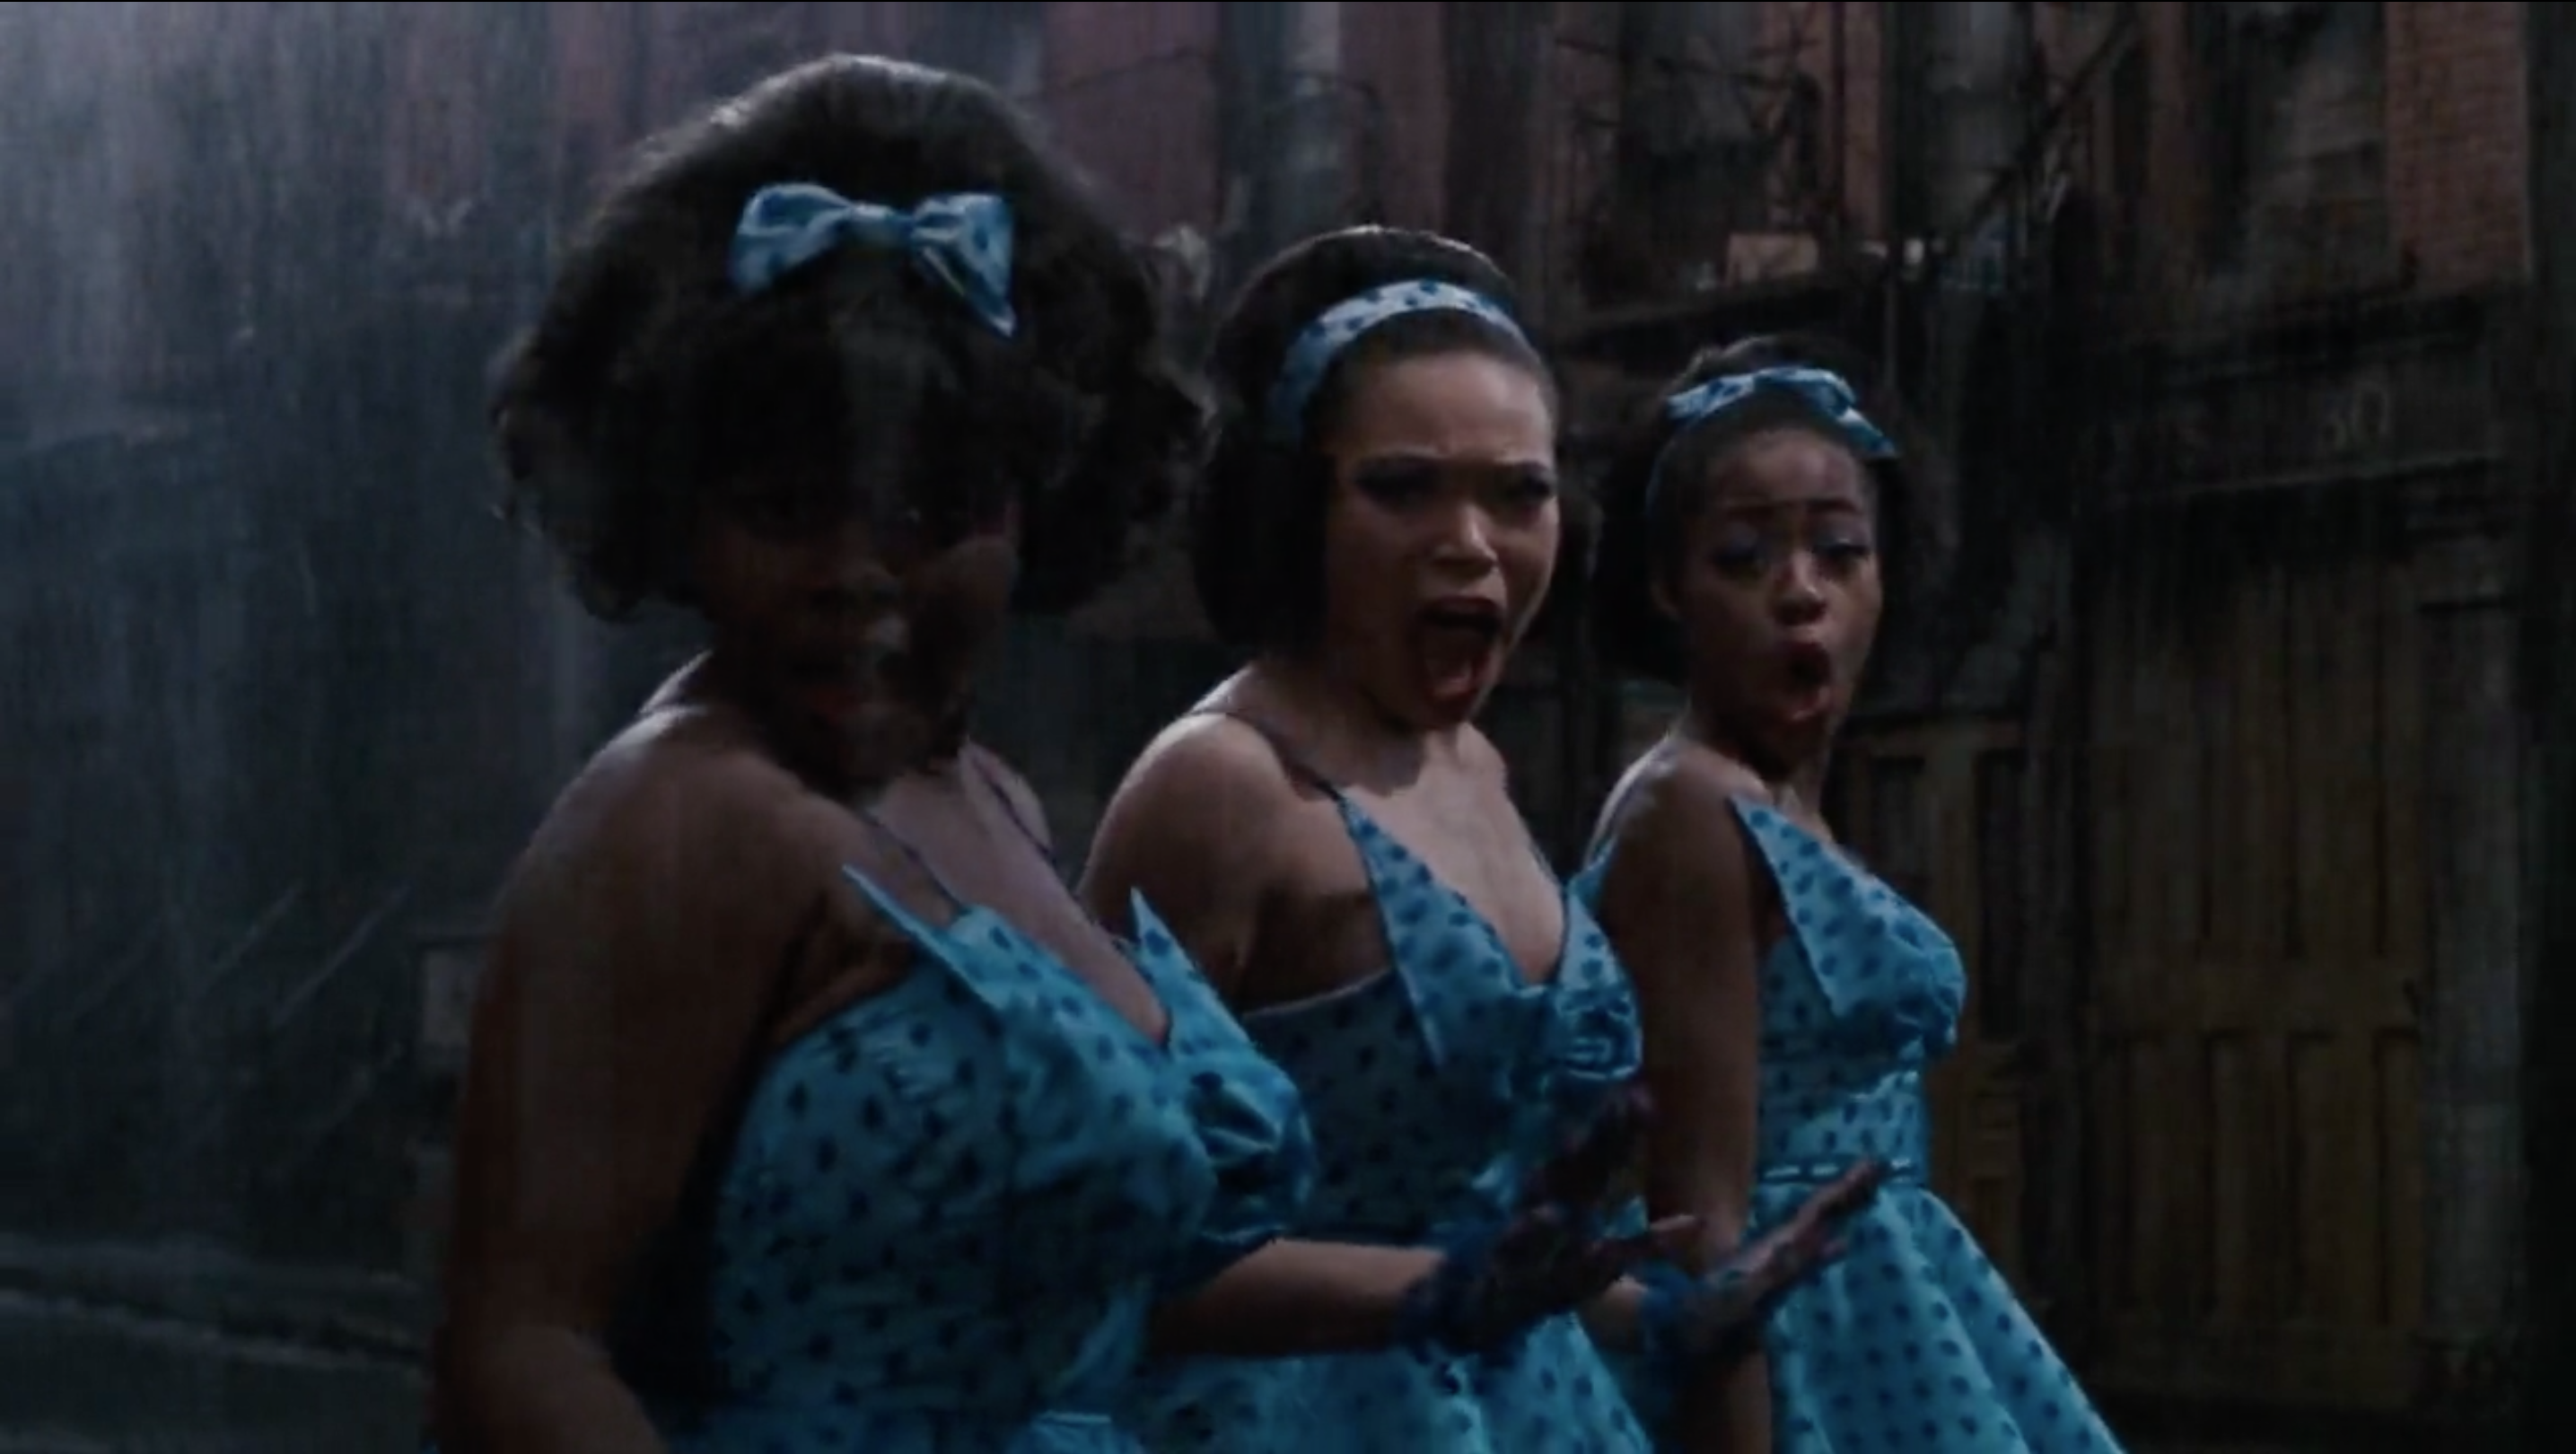 16 25 Things You Never Knew About Little Shop of Horrors